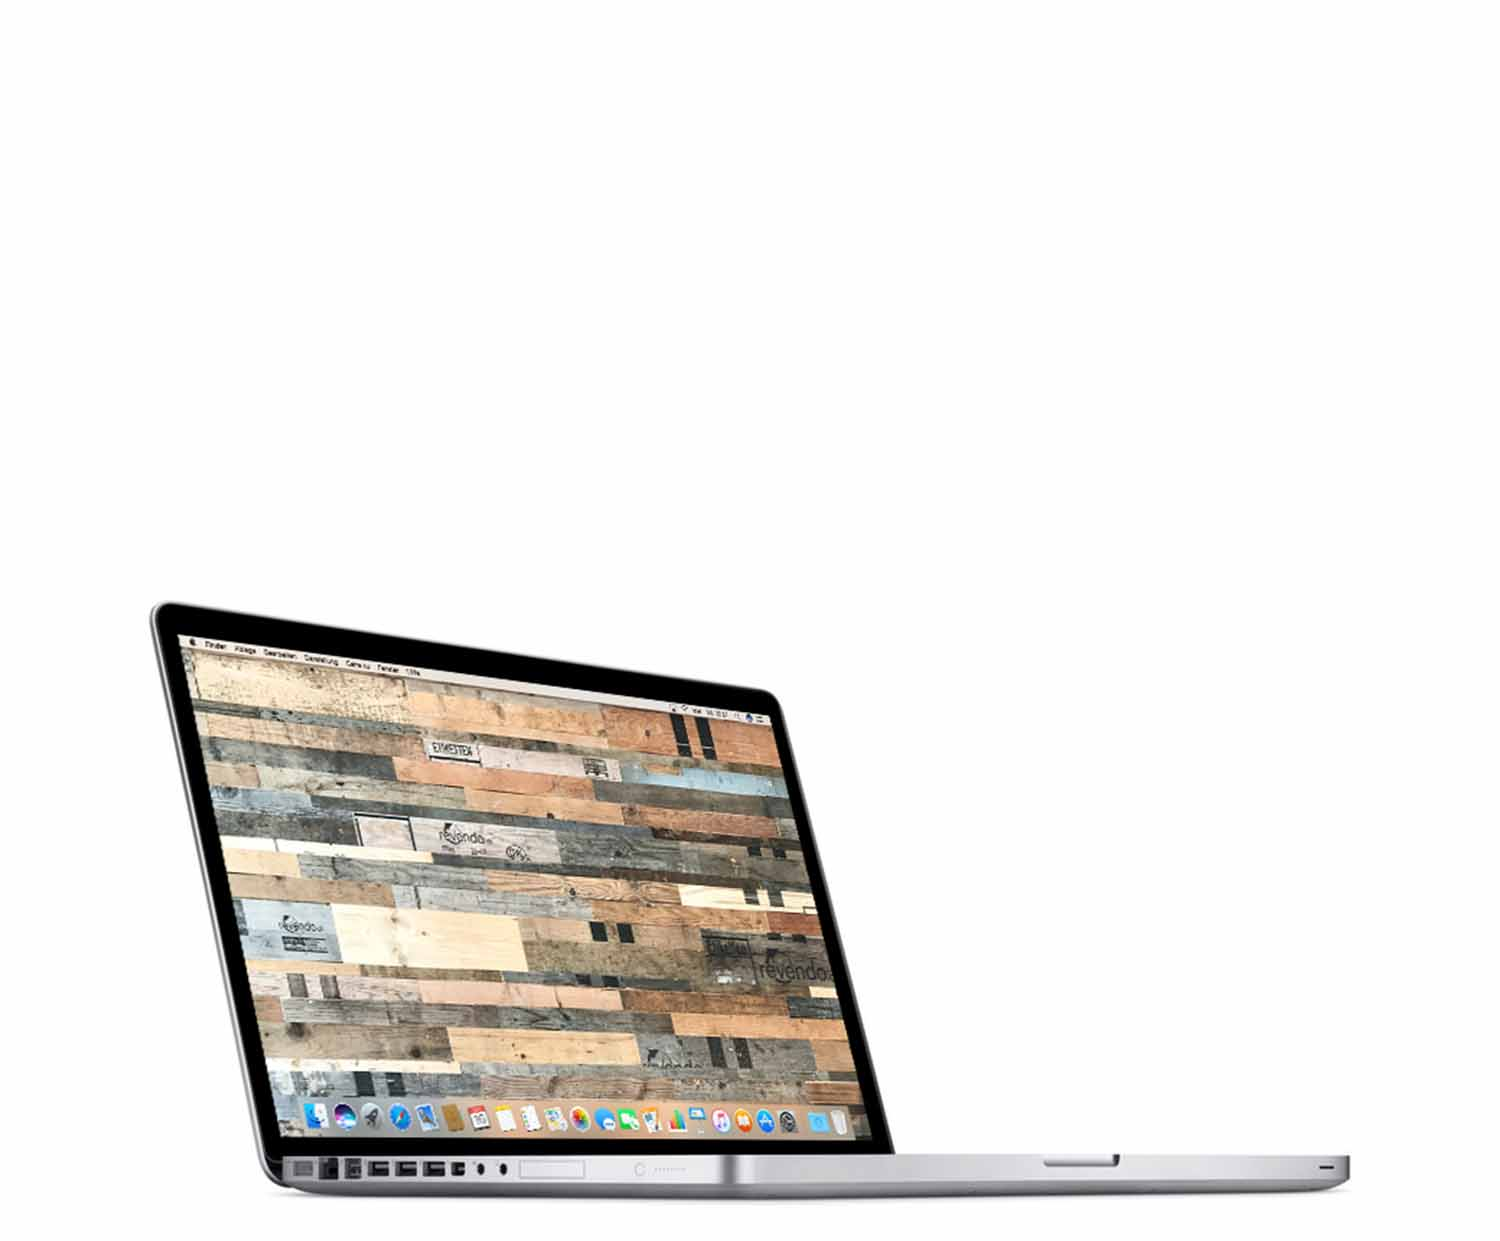 macbook pro 17 ghz core 2 duo. Black Bedroom Furniture Sets. Home Design Ideas